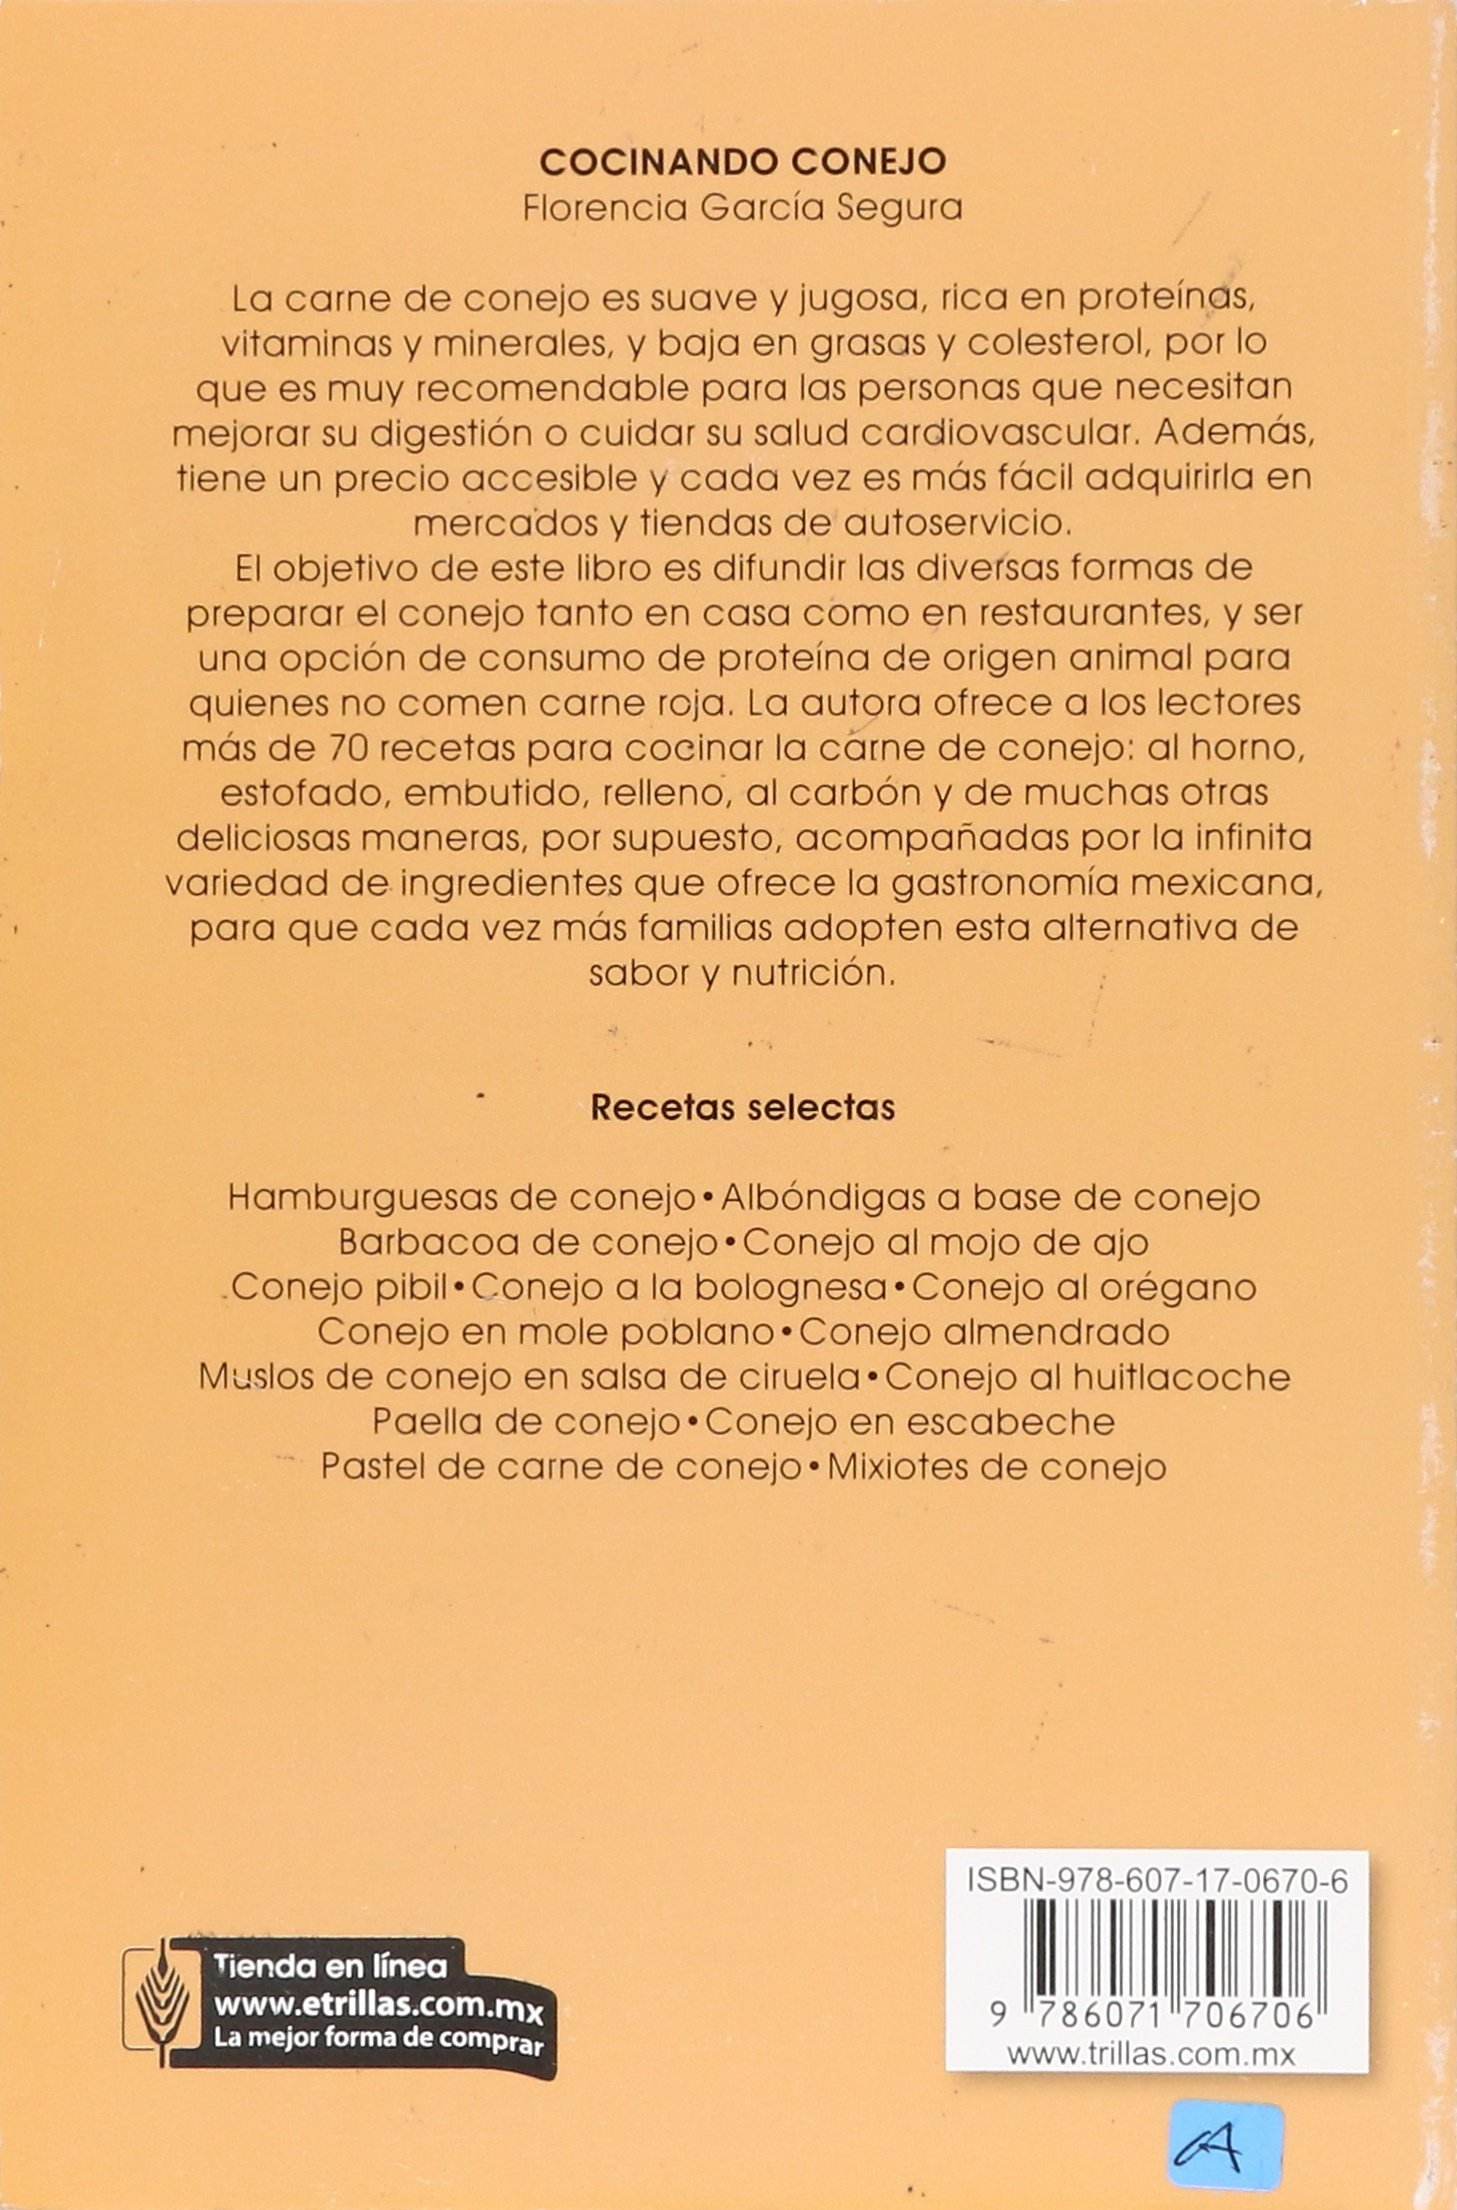 Cocinando conejo / Cooking Rabbit (Spanish Edition): Florencia Gracia Segura: 9786071706706: Amazon.com: Books